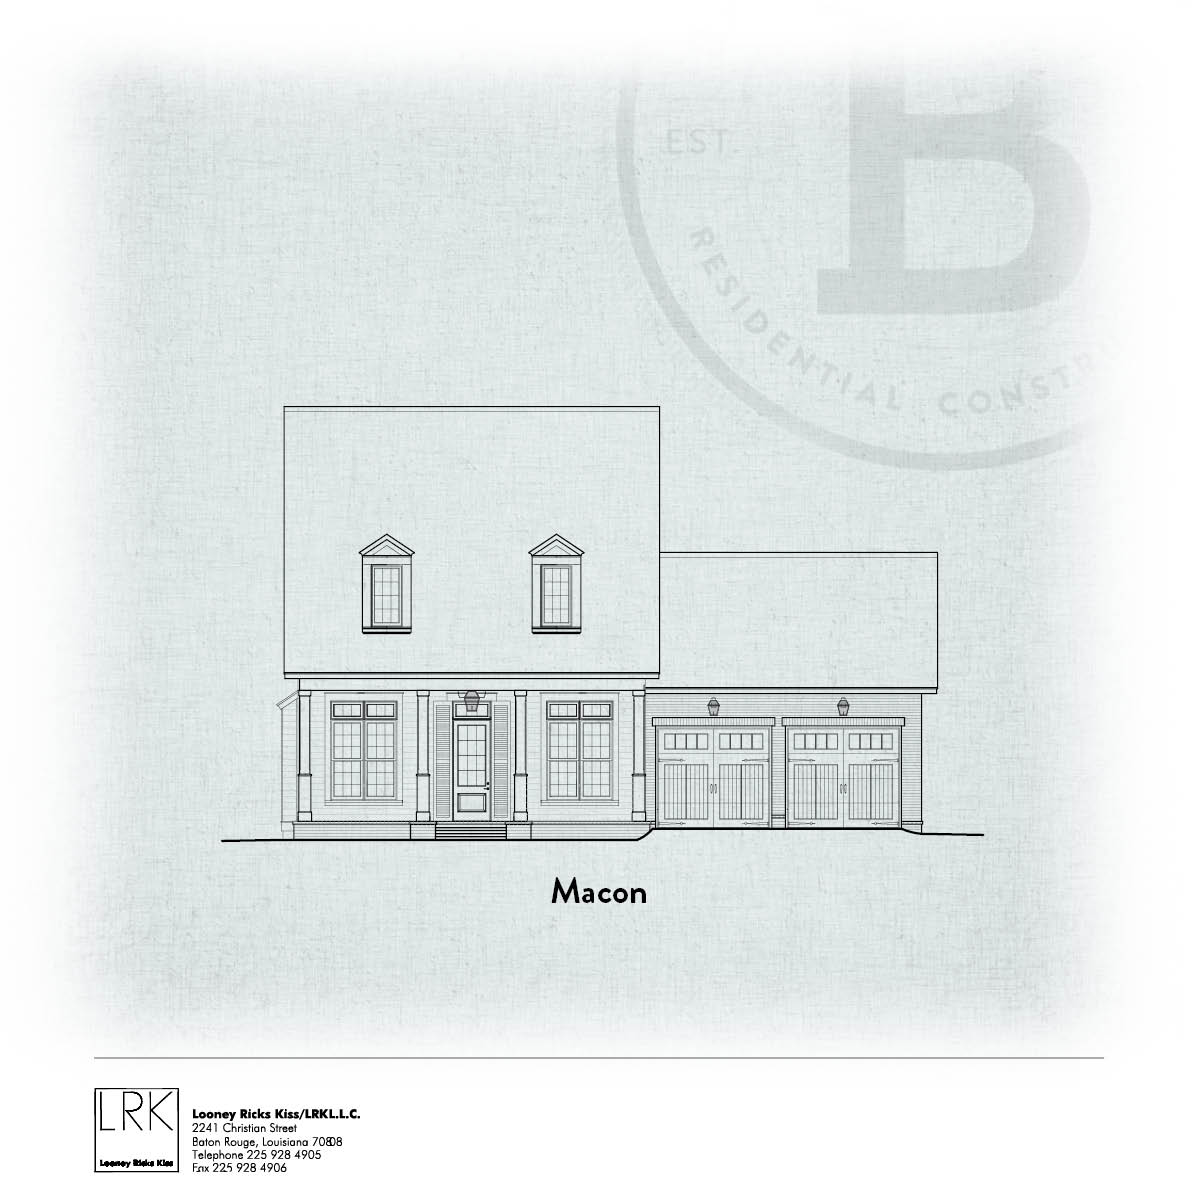 Macon Elevation